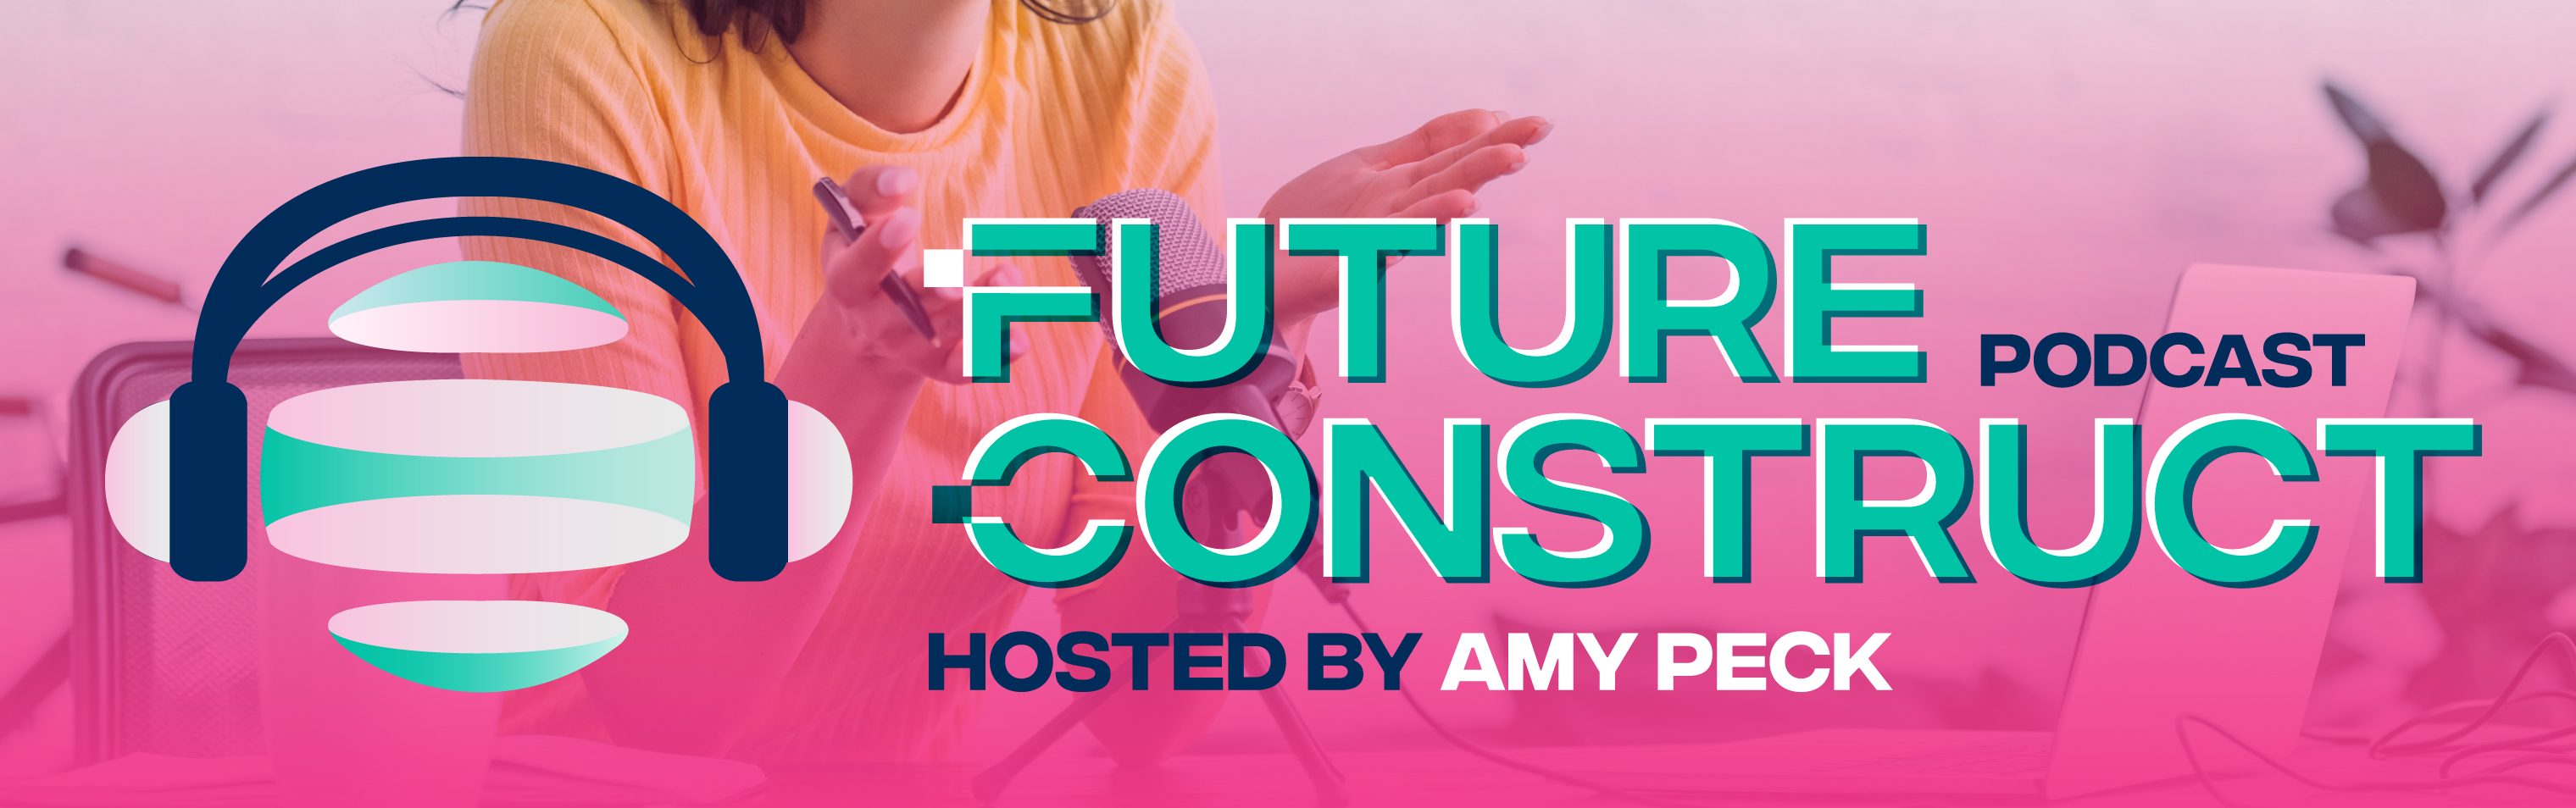 Future-Construct-Webpage